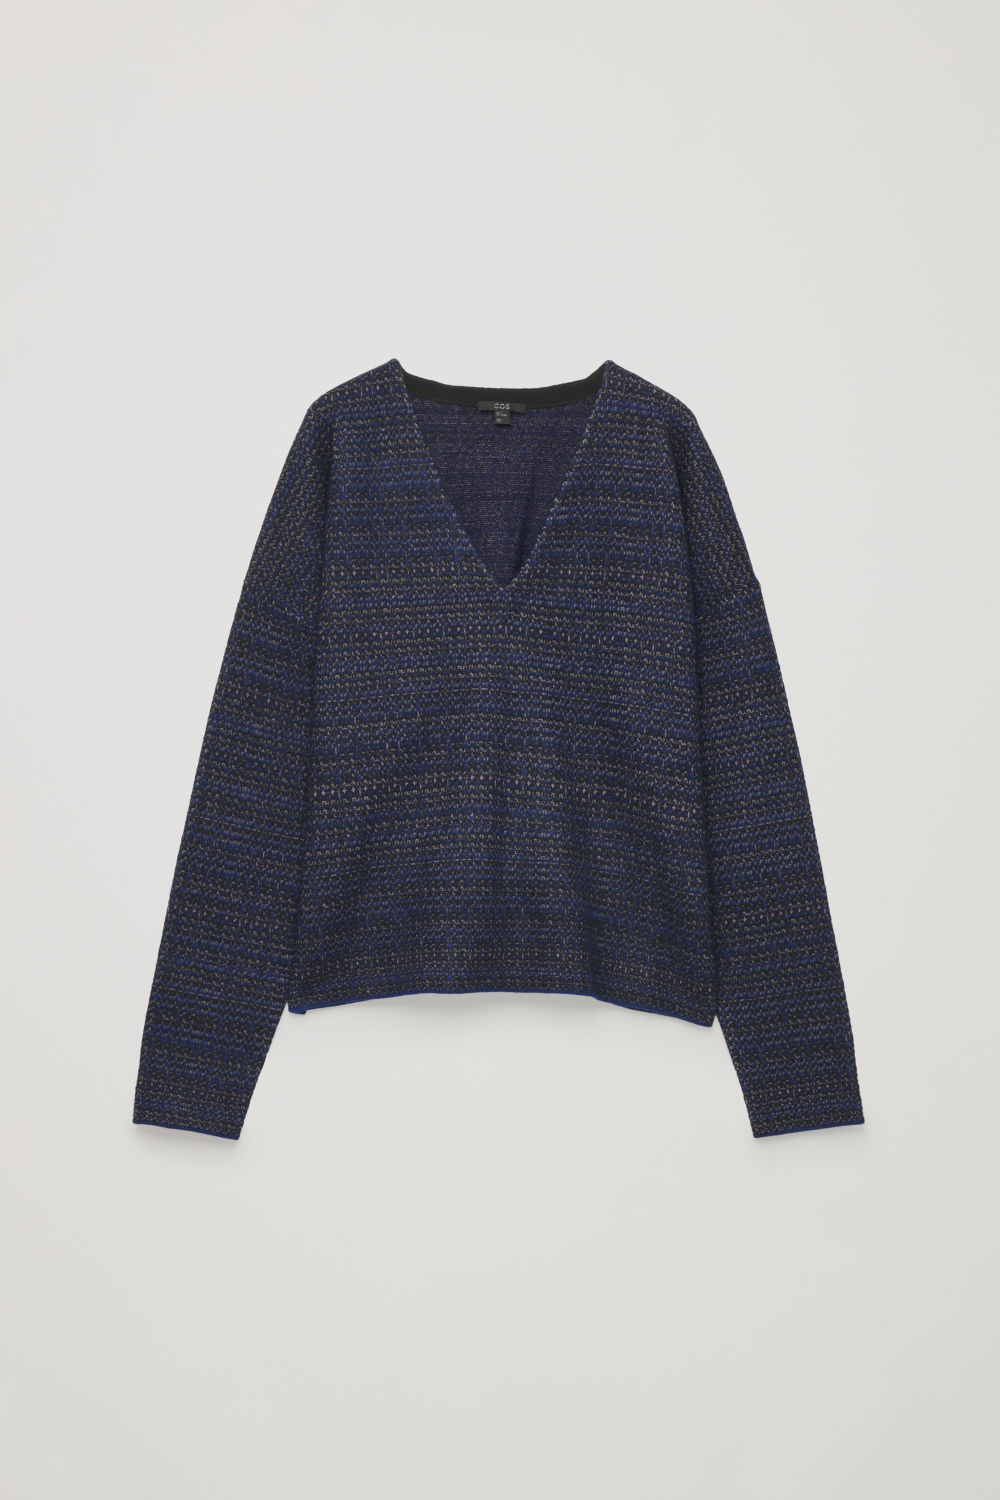 JACQUARD BOILED-WOOL JUMPER